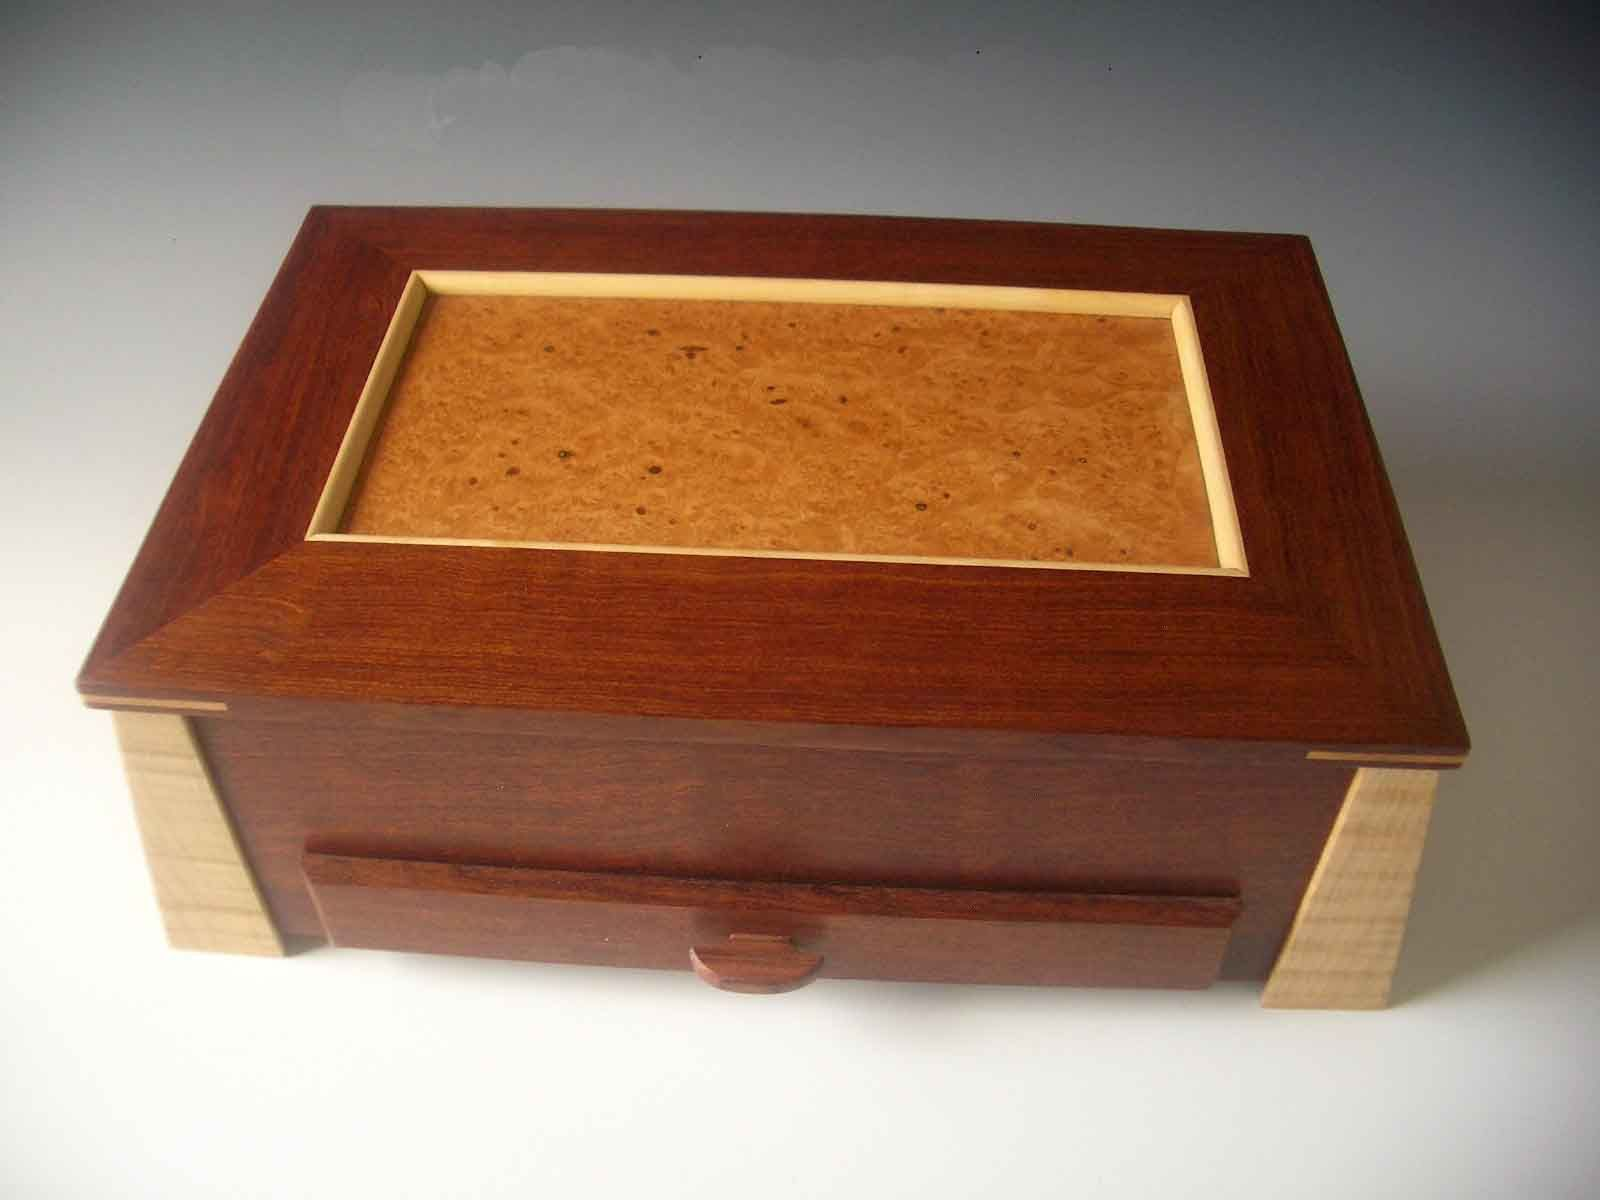 Big W Jewellery Box Box Shaped Jewelry Box With Angled Legs A Lid That Lifts